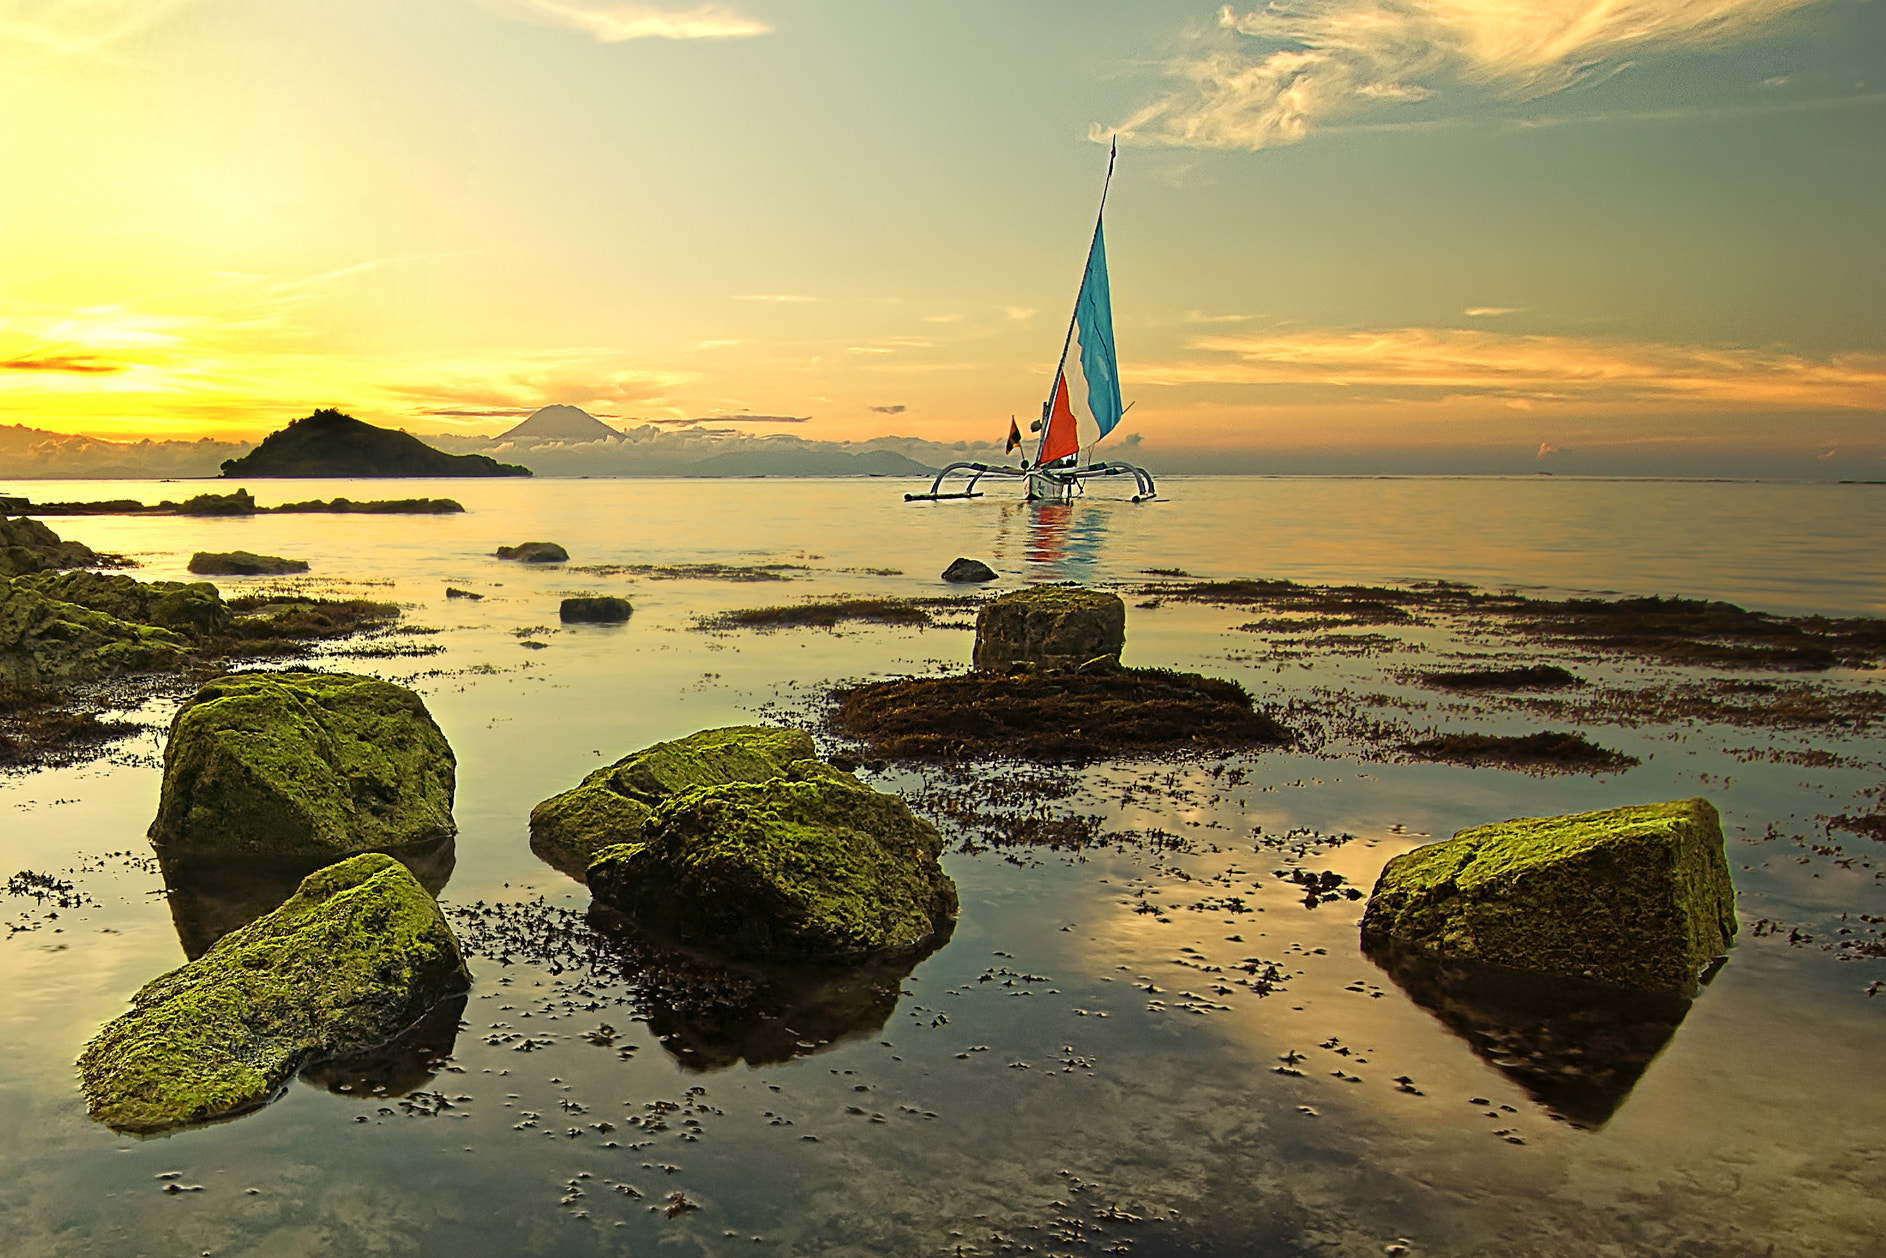 Photograph Sekotong's Boat #2 by Eep Ependi on 500px